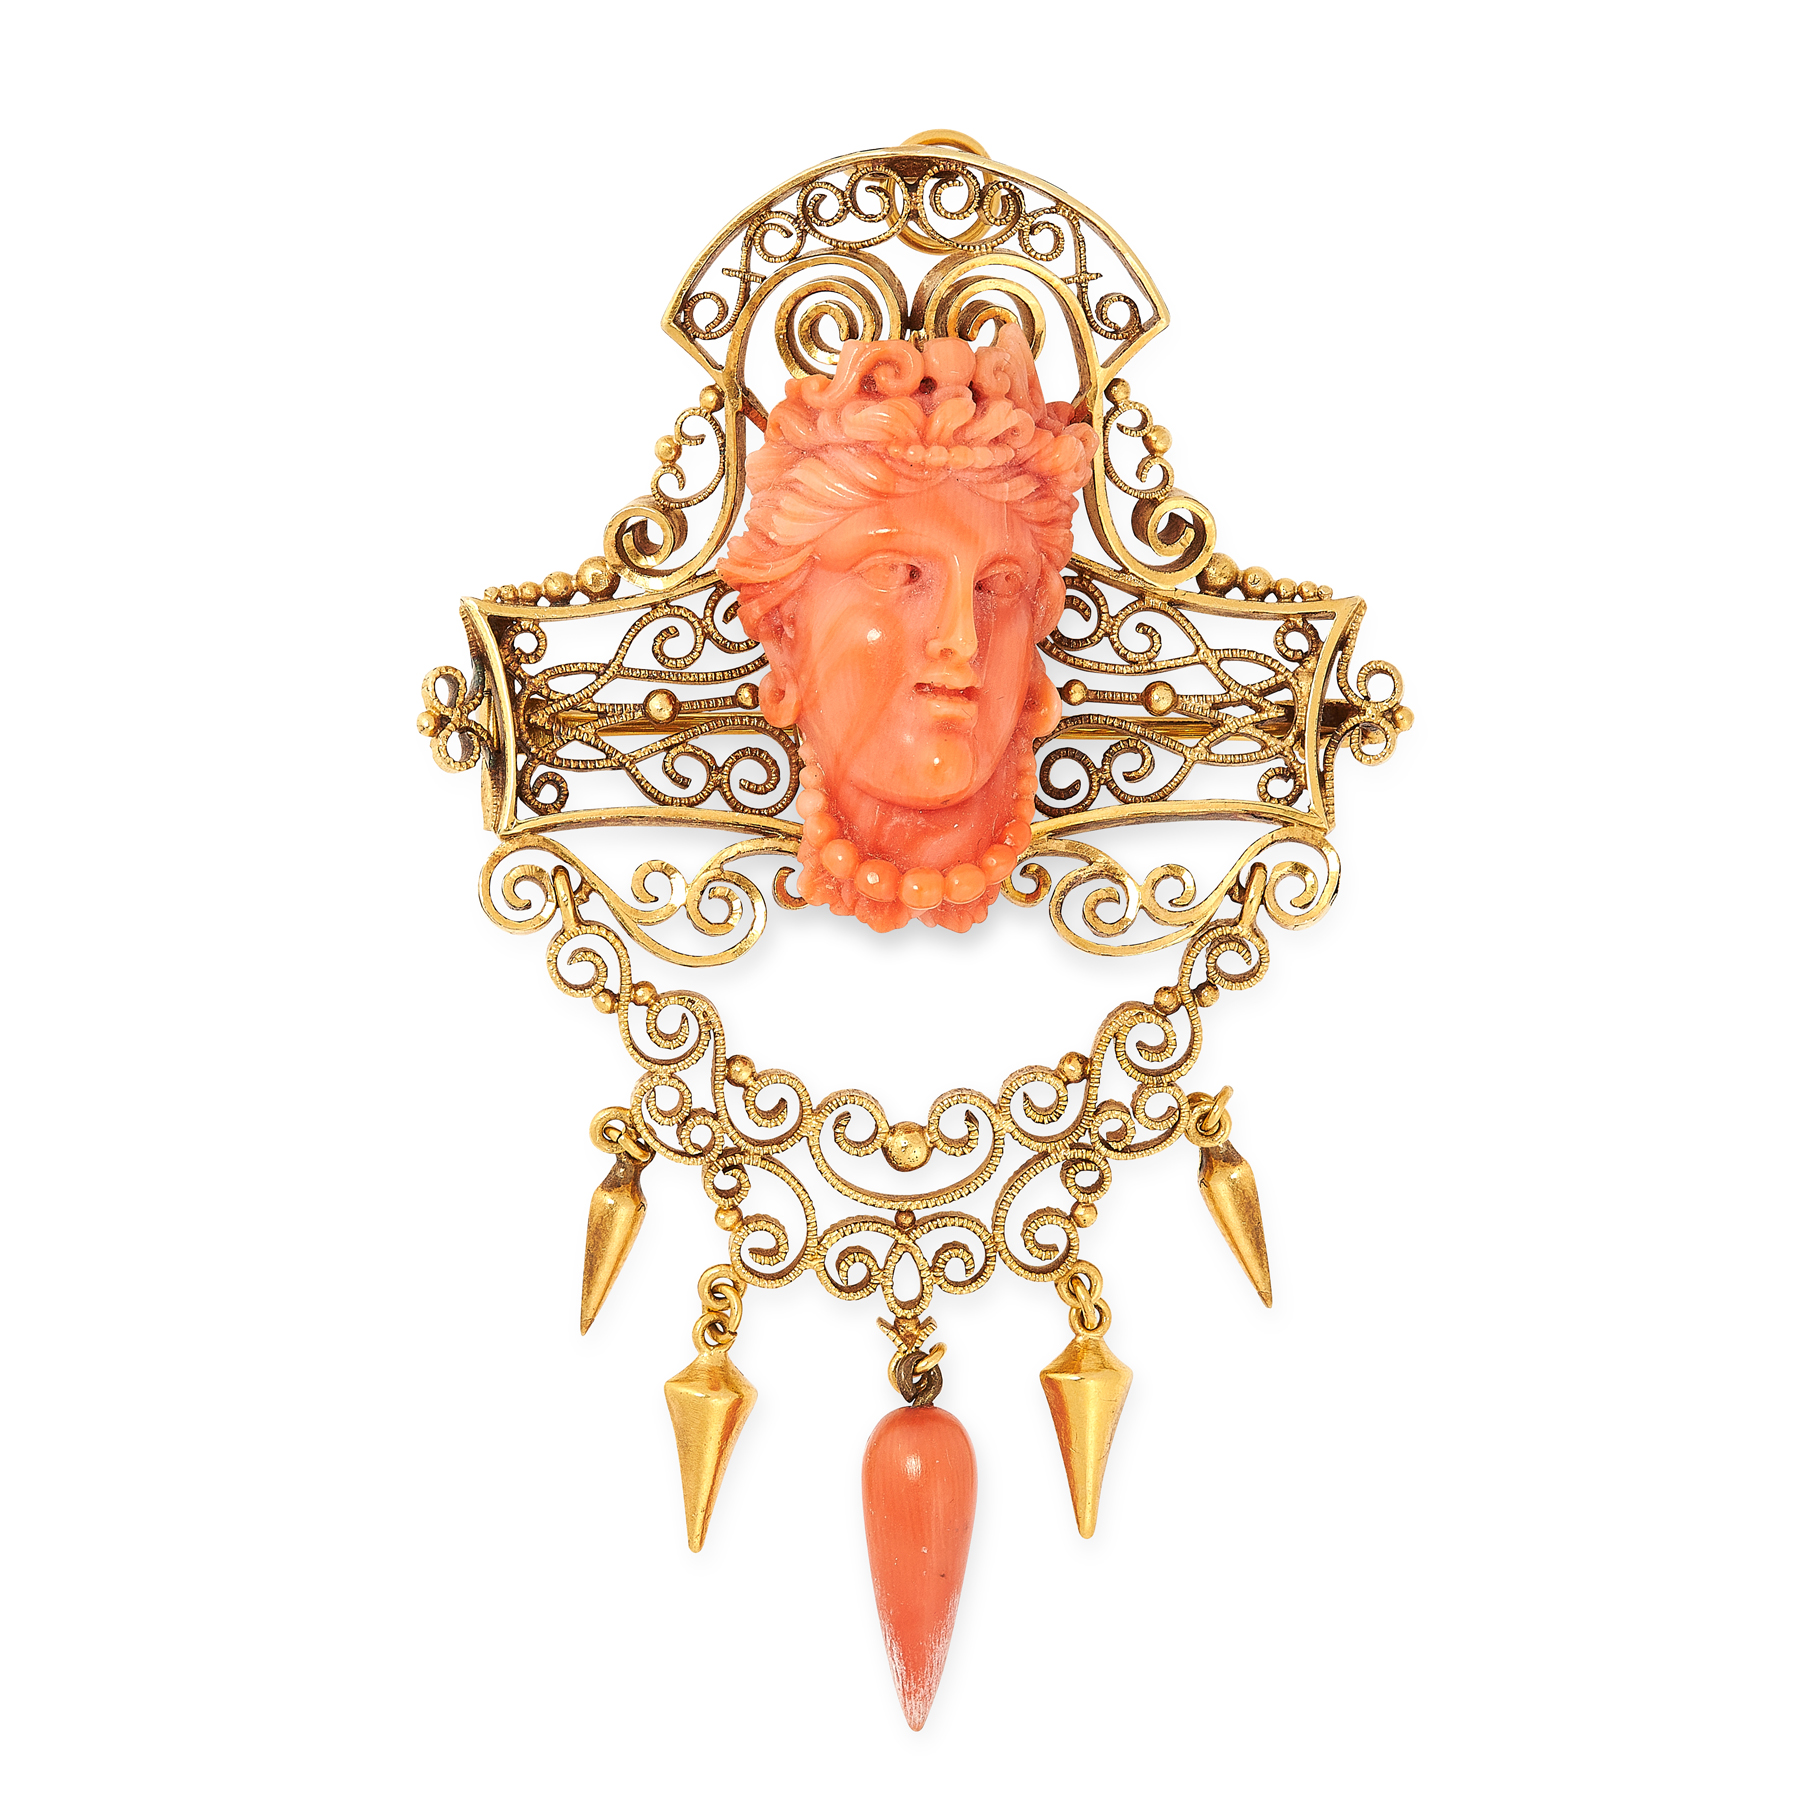 AN ANTIQUE CARVED CORAL DEMI PARURE, 19TH CENTURY in high carat yellow gold, comprising a brooch /